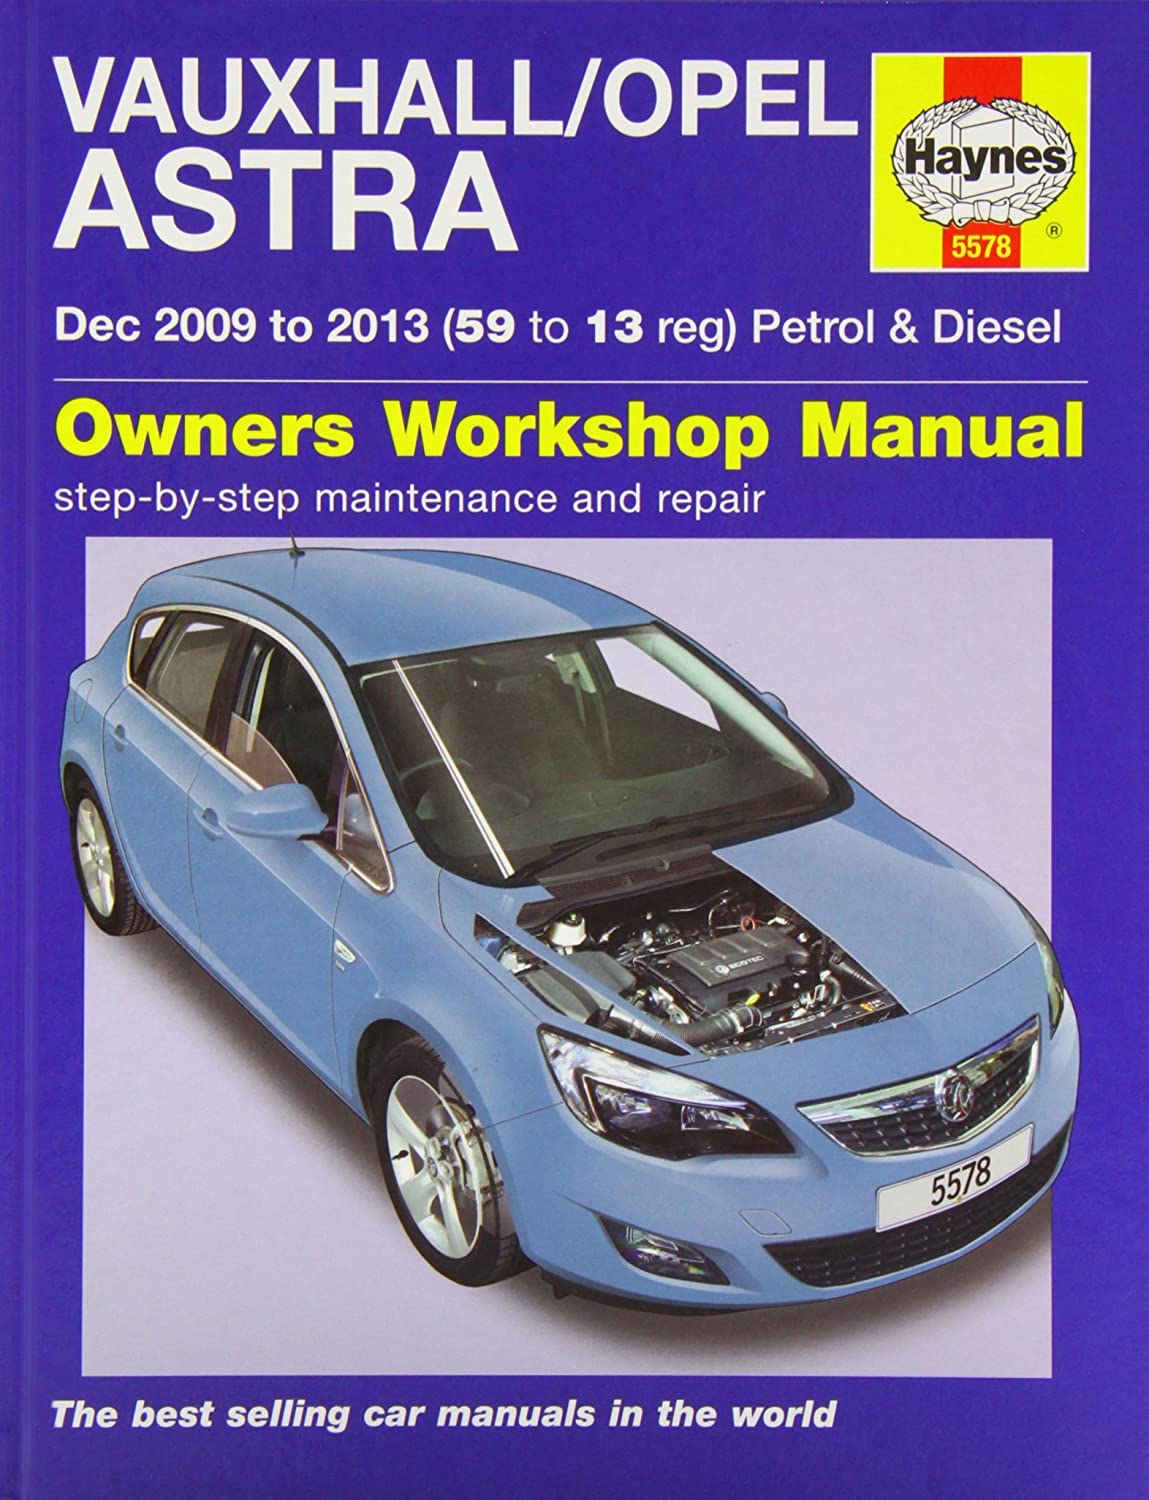 service manual vauxhall astra free owners manual u2022 rh wordworksbysea com 2016 Holden Astra Holden Ute